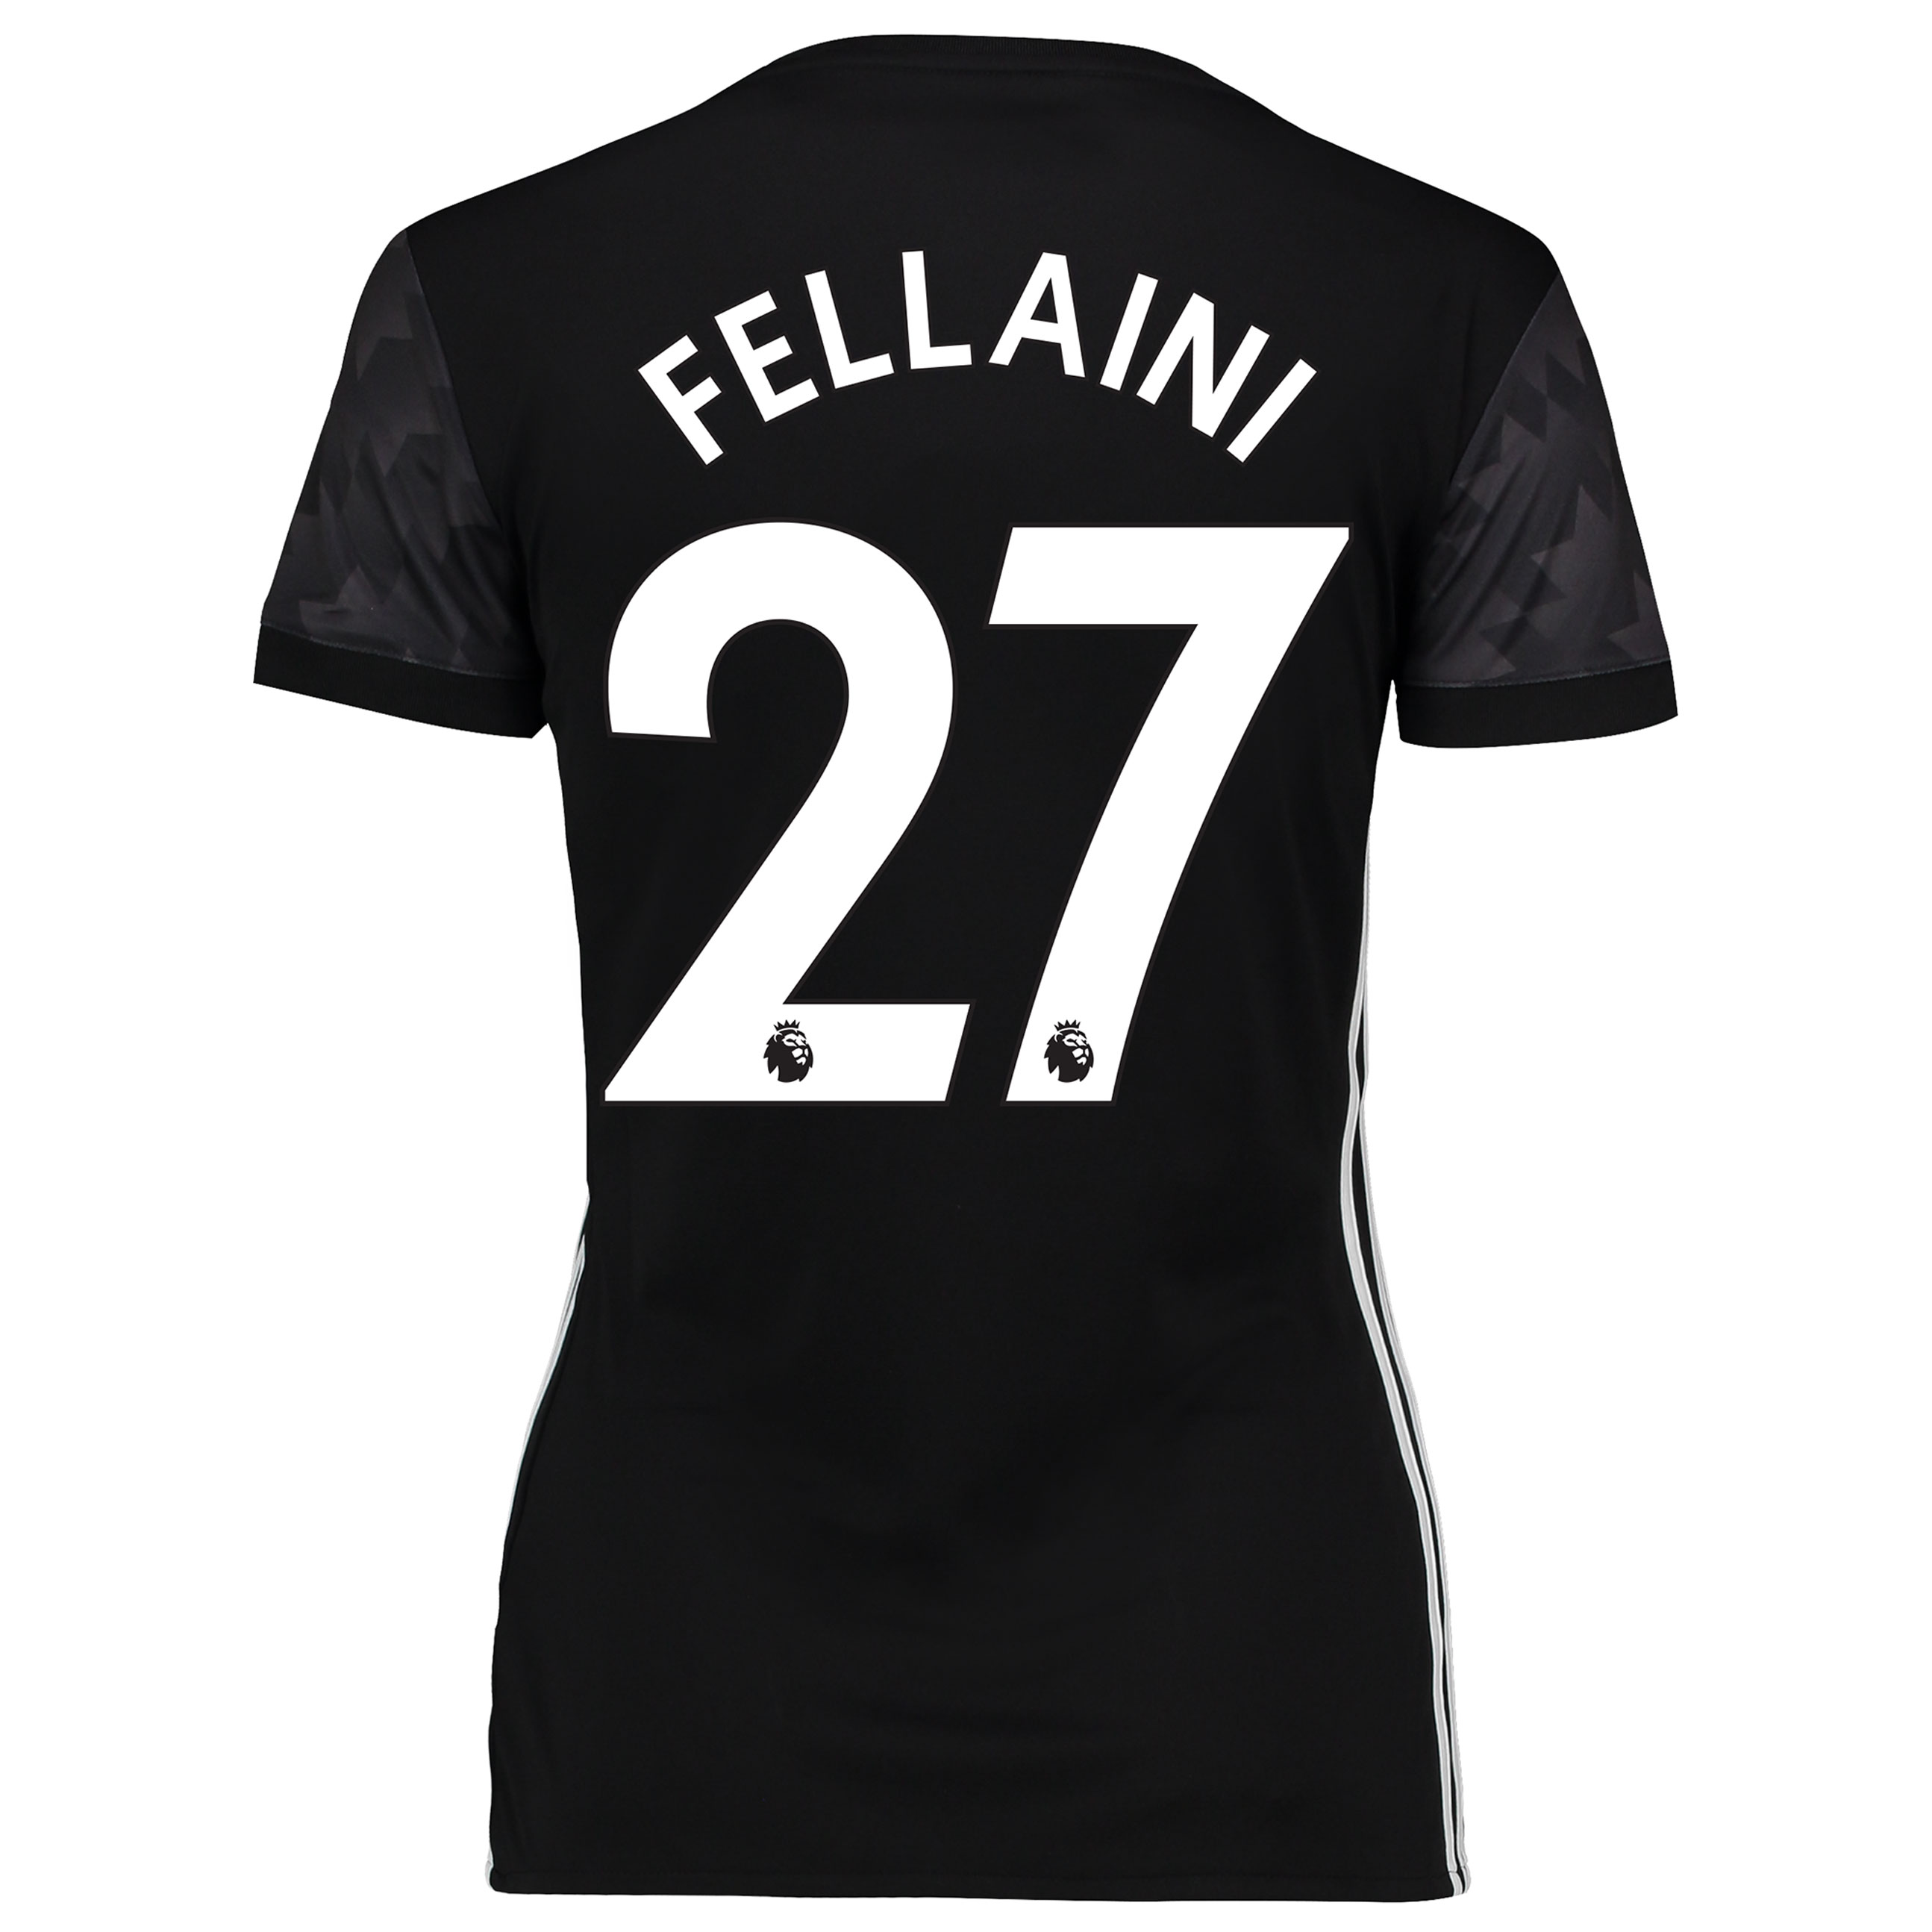 Manchester United Away Shirt 2017-18 - Womens with Fellaini 27 printin